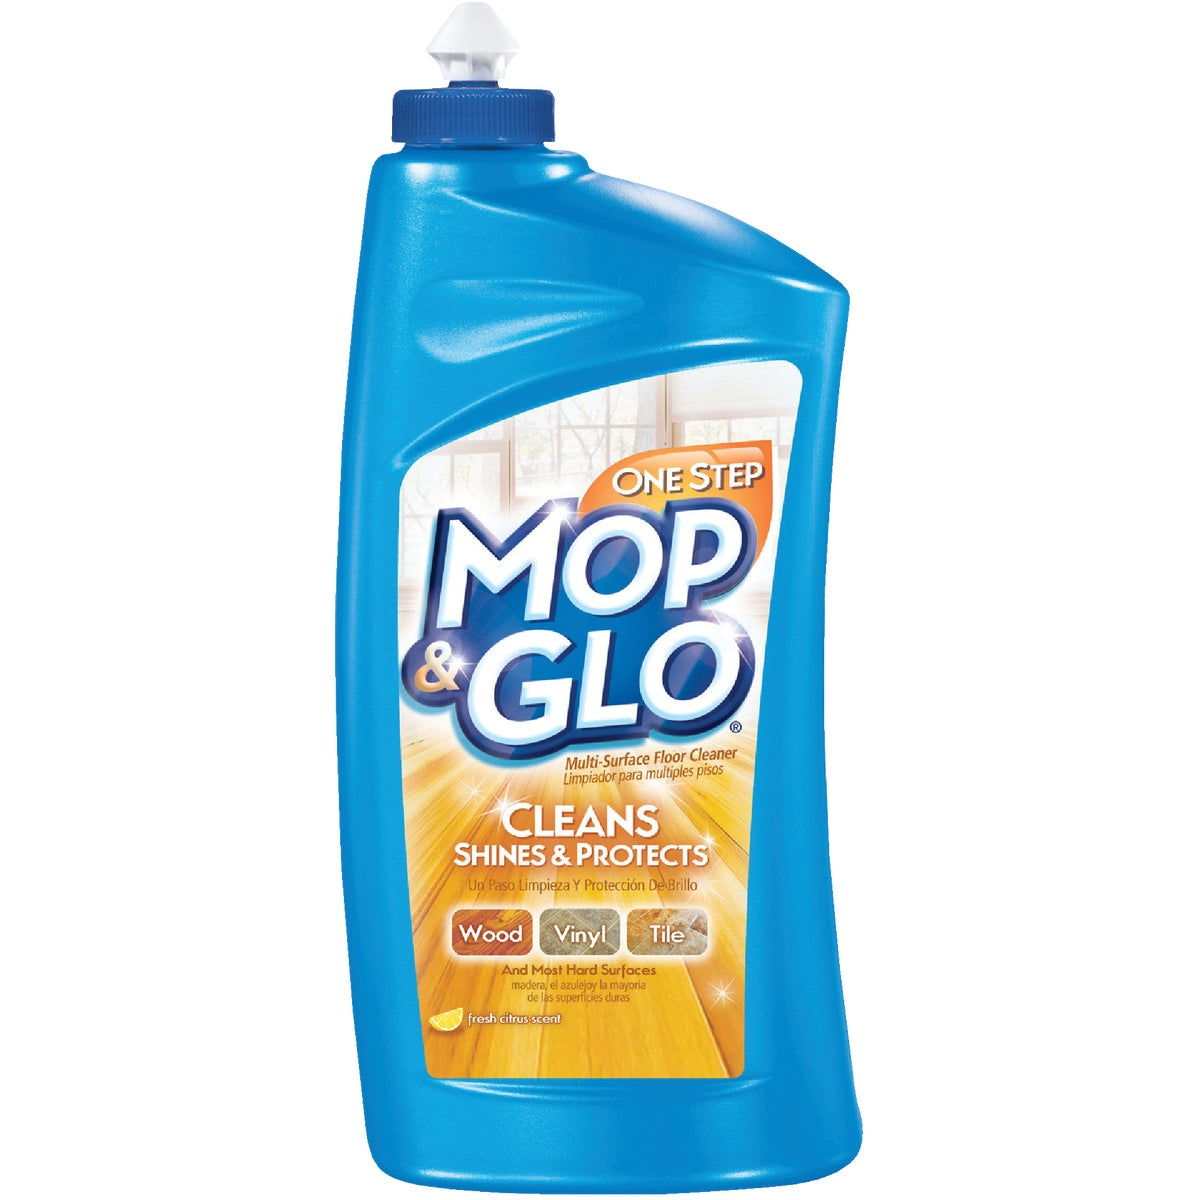 32OZ MOP & GLO CLEANER - 1920089333 by Reckitt Benckiser